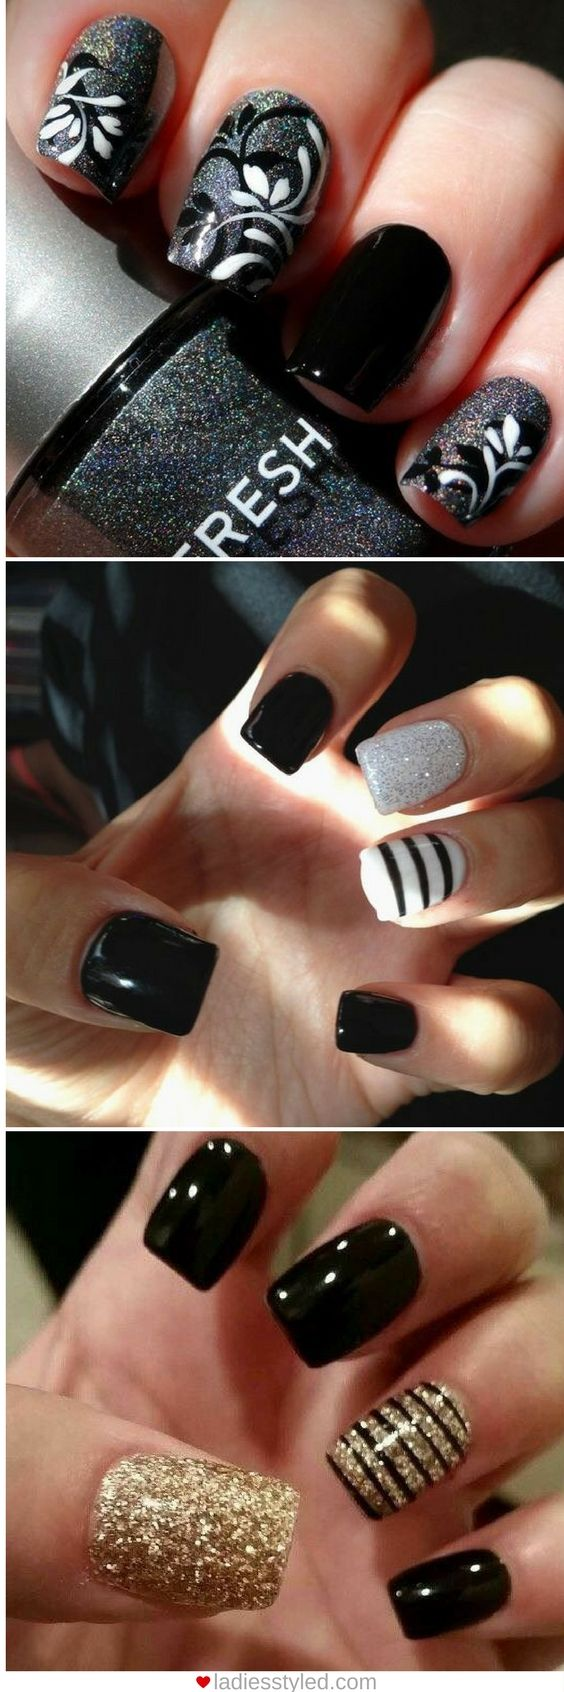 Nail art designs besides red nail art designs on top nail art images - 60 Nail Art Ideas To Make You Look Trendy And Stylish